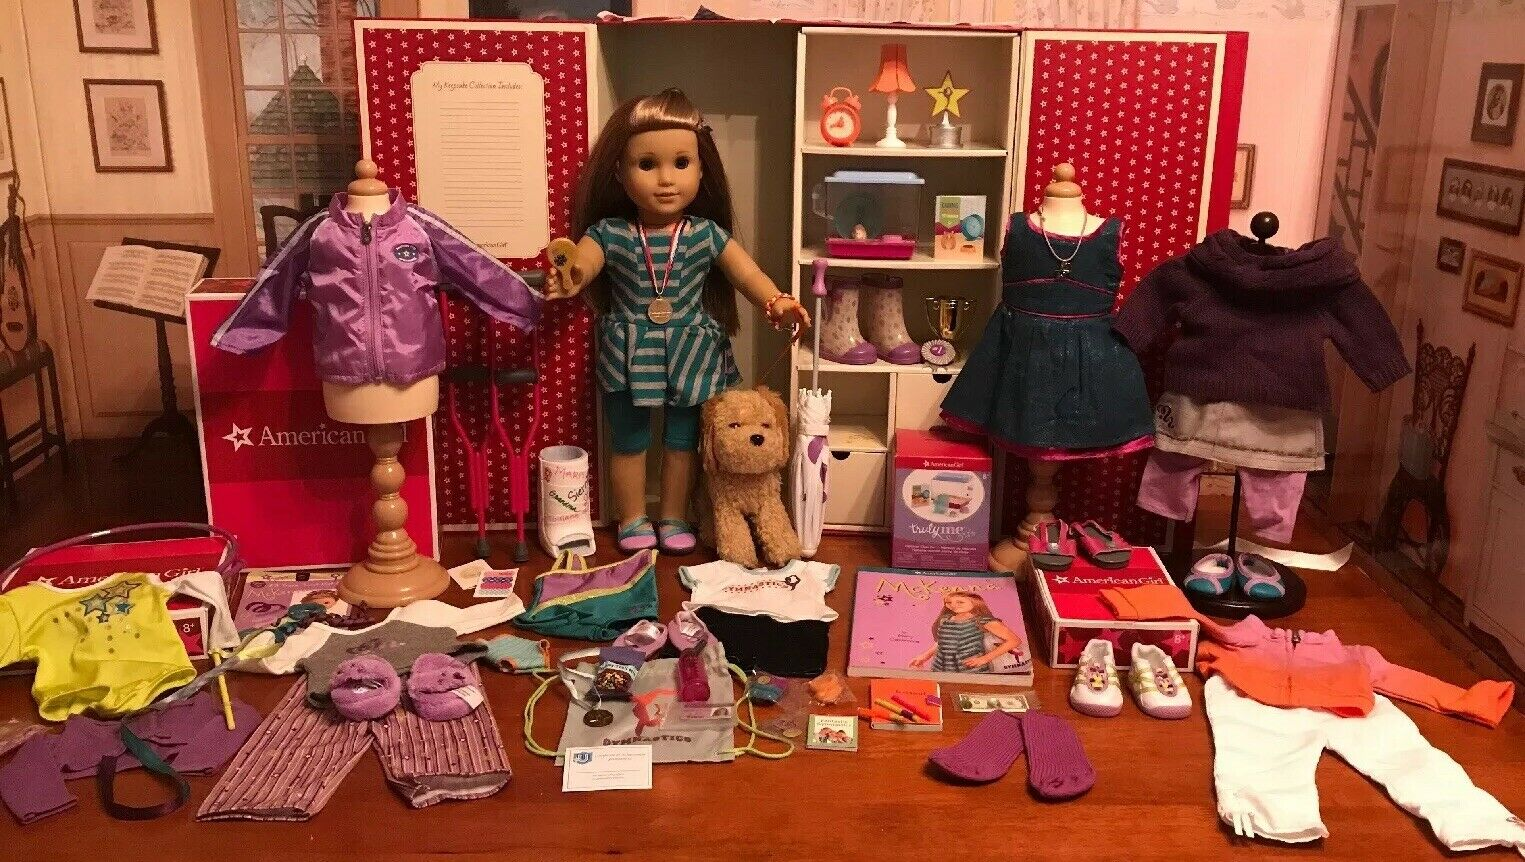 American Girl Doll Of The Year 2012 Mckenna Brooks Collection-Retirot